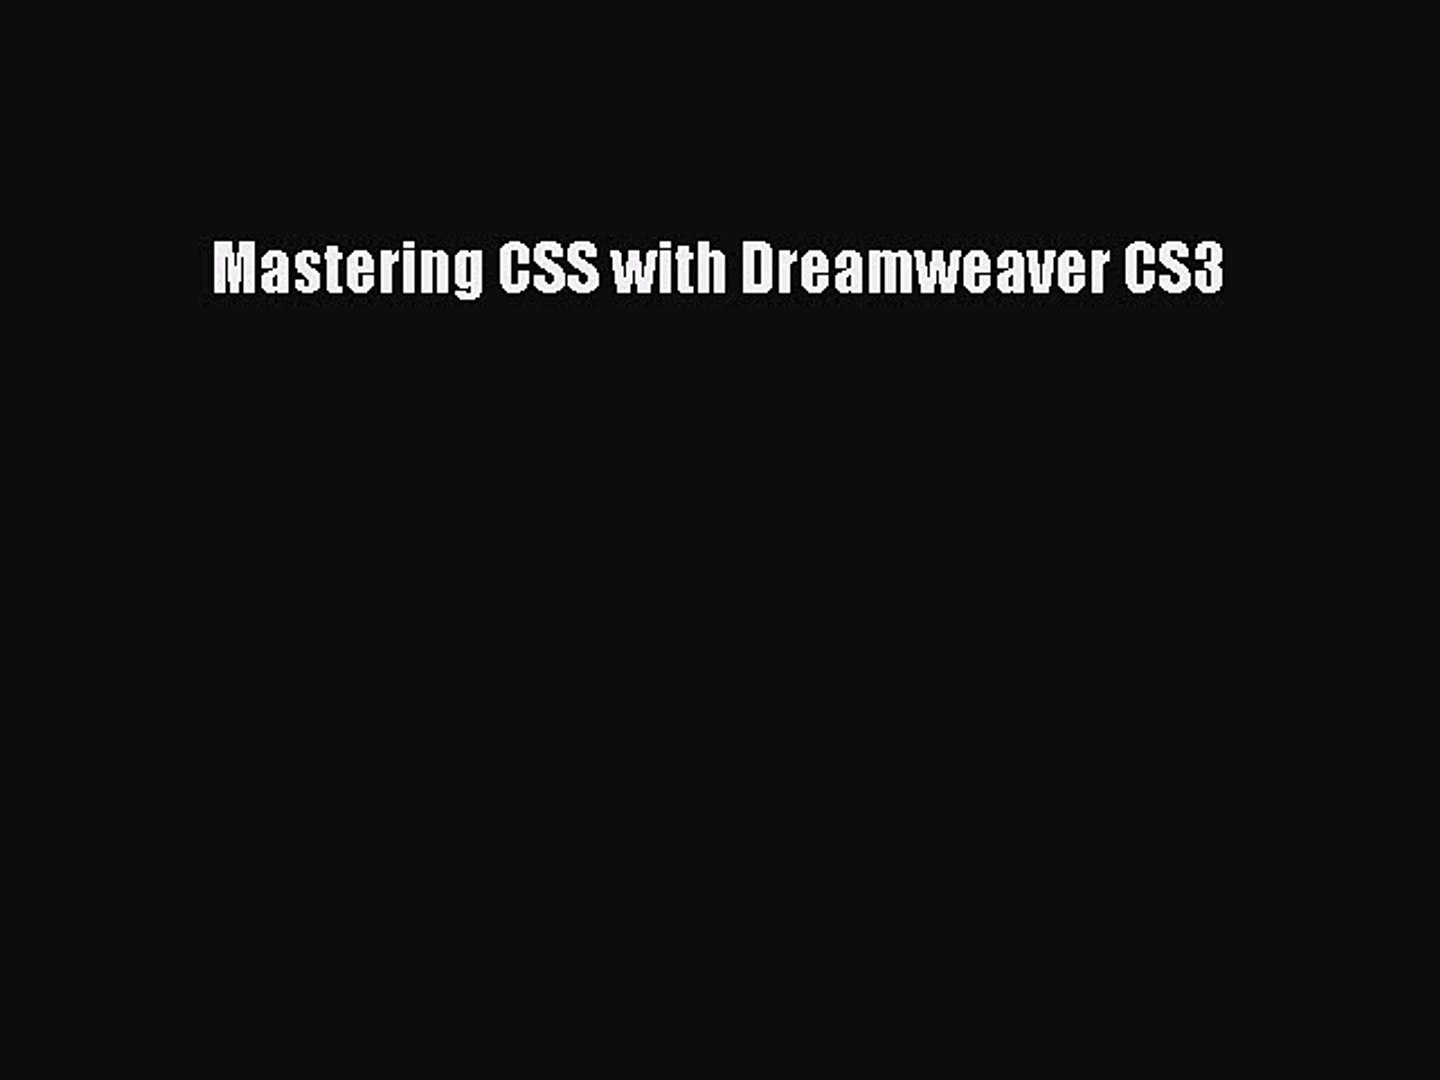 Table of contents for Mastering CSS with Dreamweaver CS3 / Stephanie Sullivan and Greg Rewis.